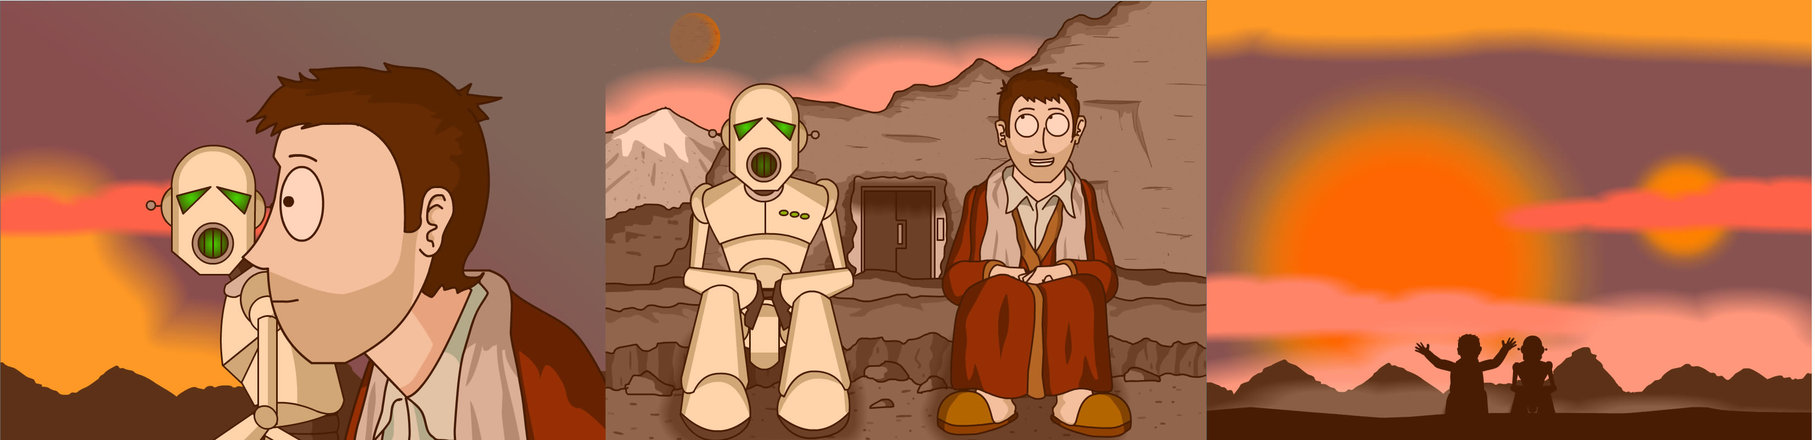 arthur_dent_and_marvin_by_nick_of_the_dead-d67bfs3